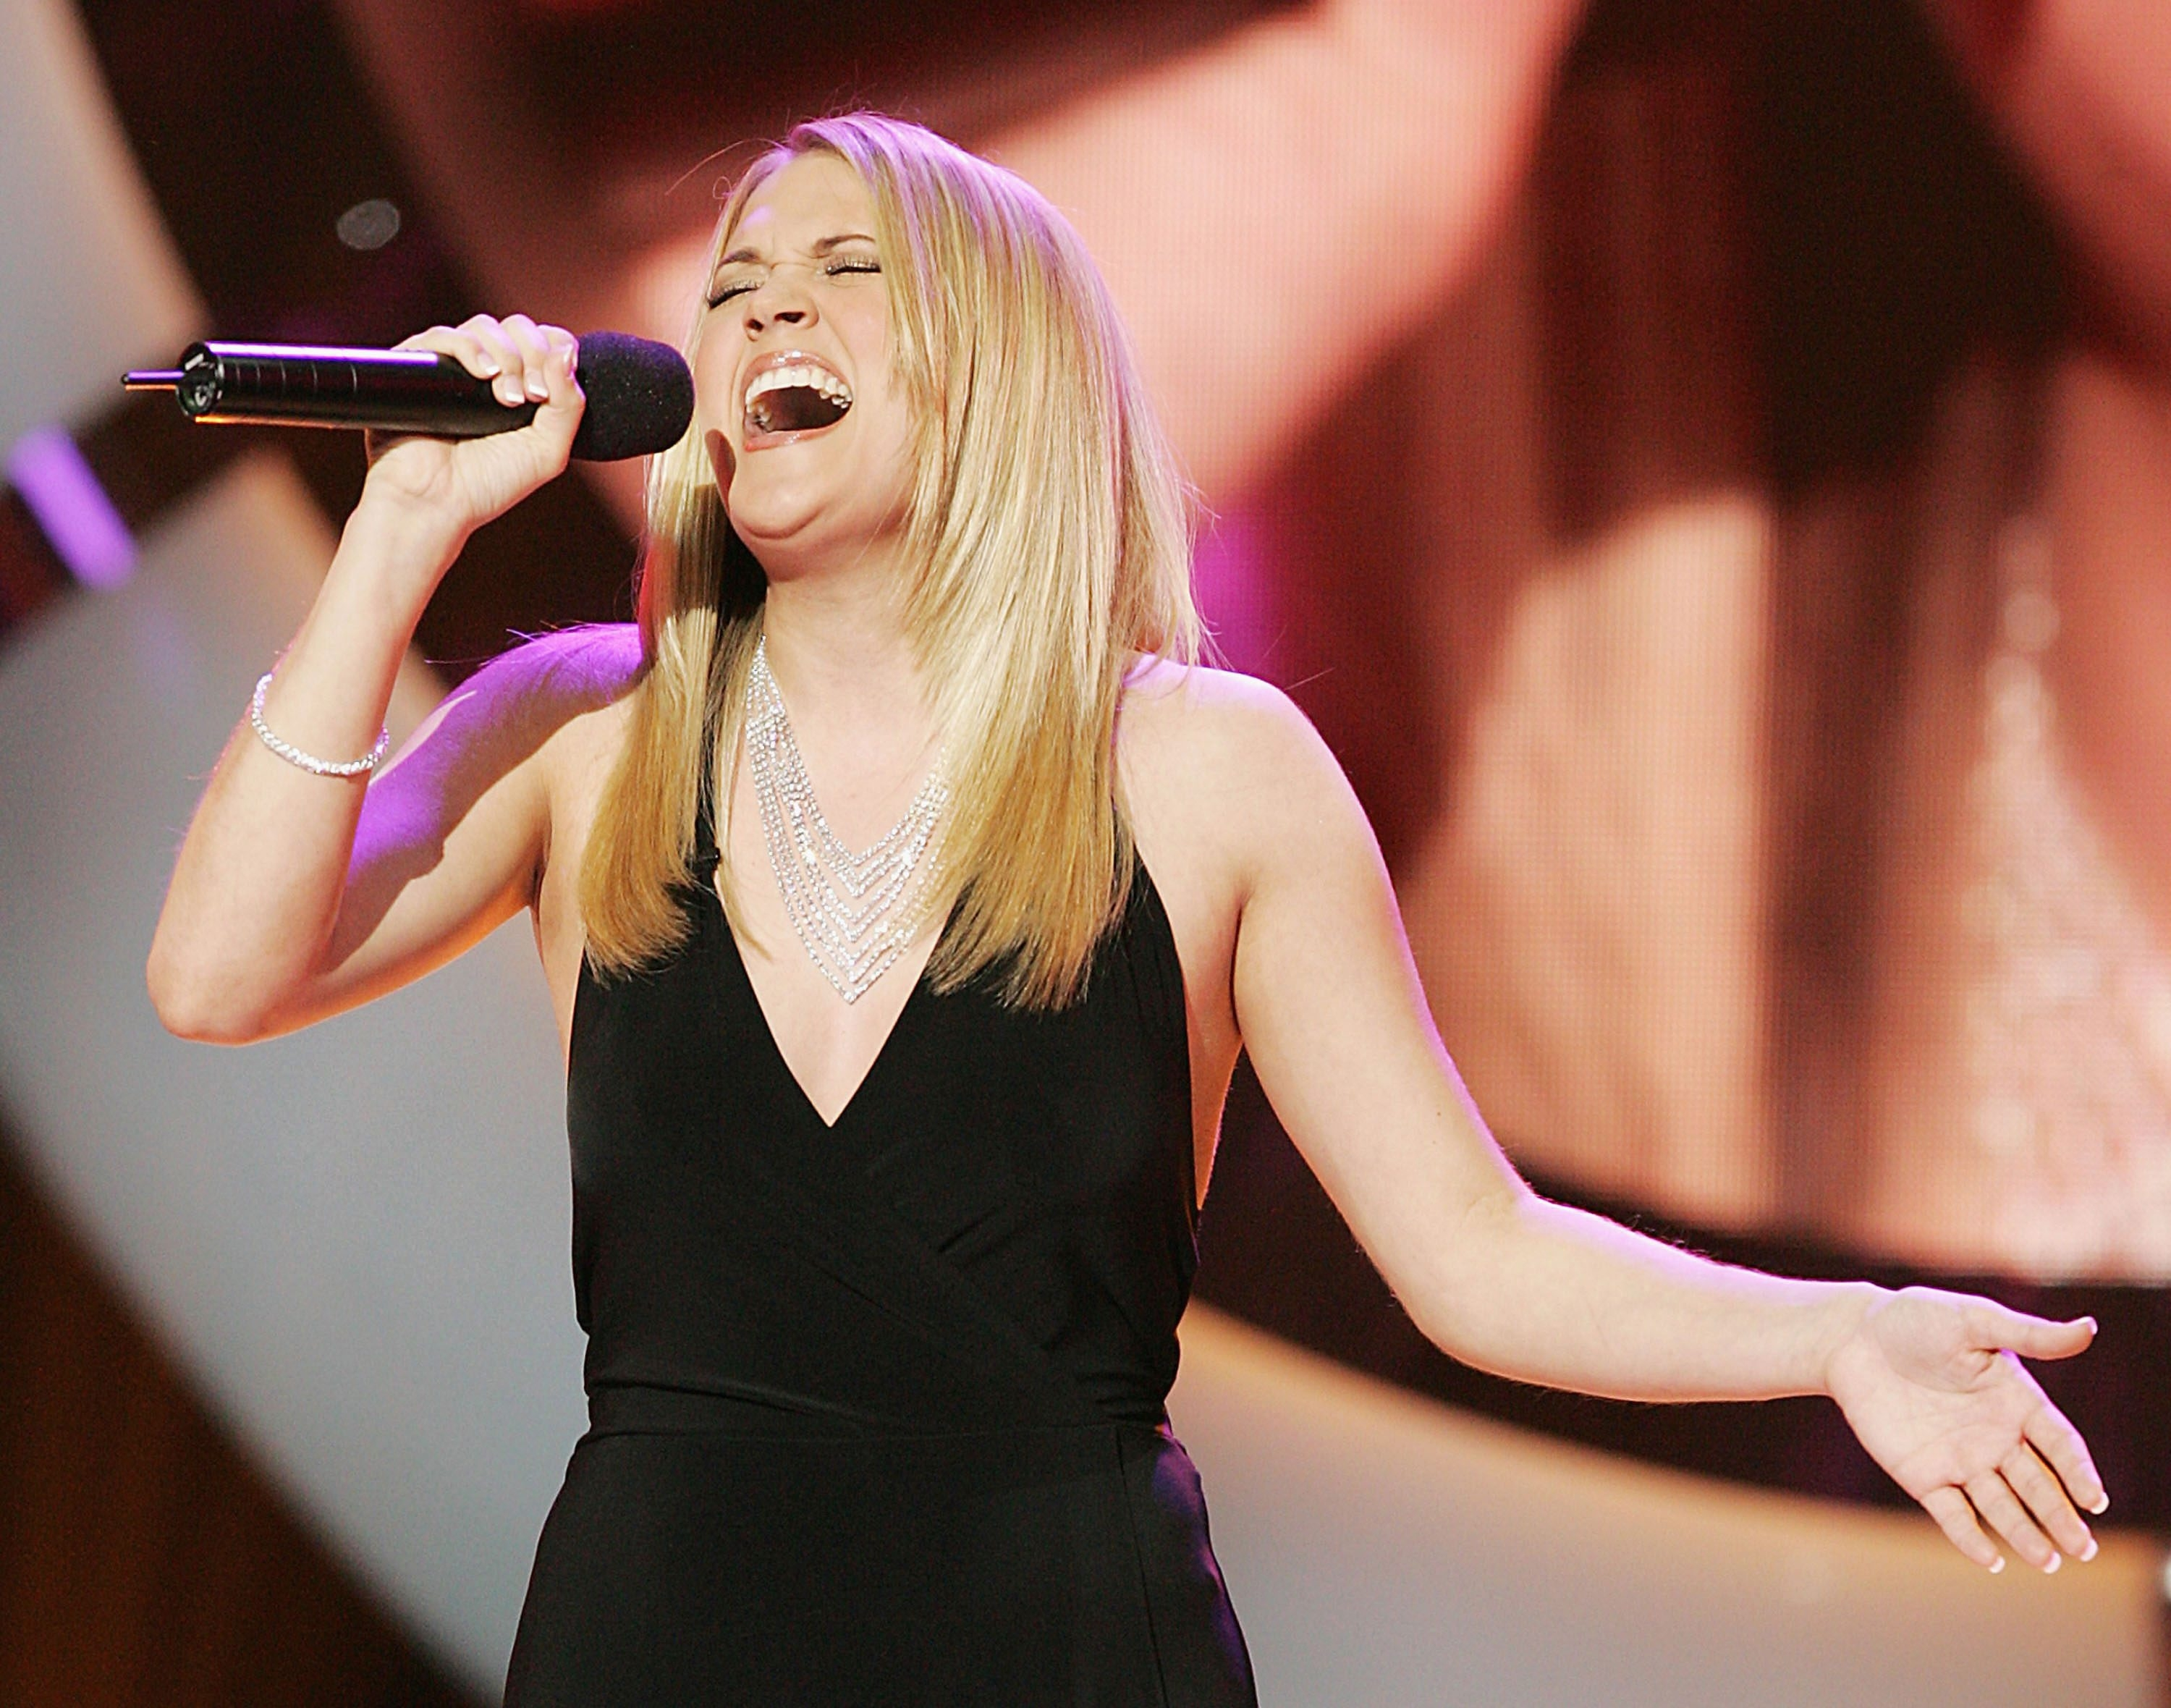 LOS ANGELES - MAY 24:  Finalist Carrie Underwood sings at the 'American Idol' final performance show at the Kodak Theatre on May 24, 2005 in Los Angeles, California. (Photo by Kevin Winter/Getty Images) *** Local Caption *** Carrie Underwood *** Local Caption *** Carrie Underwood